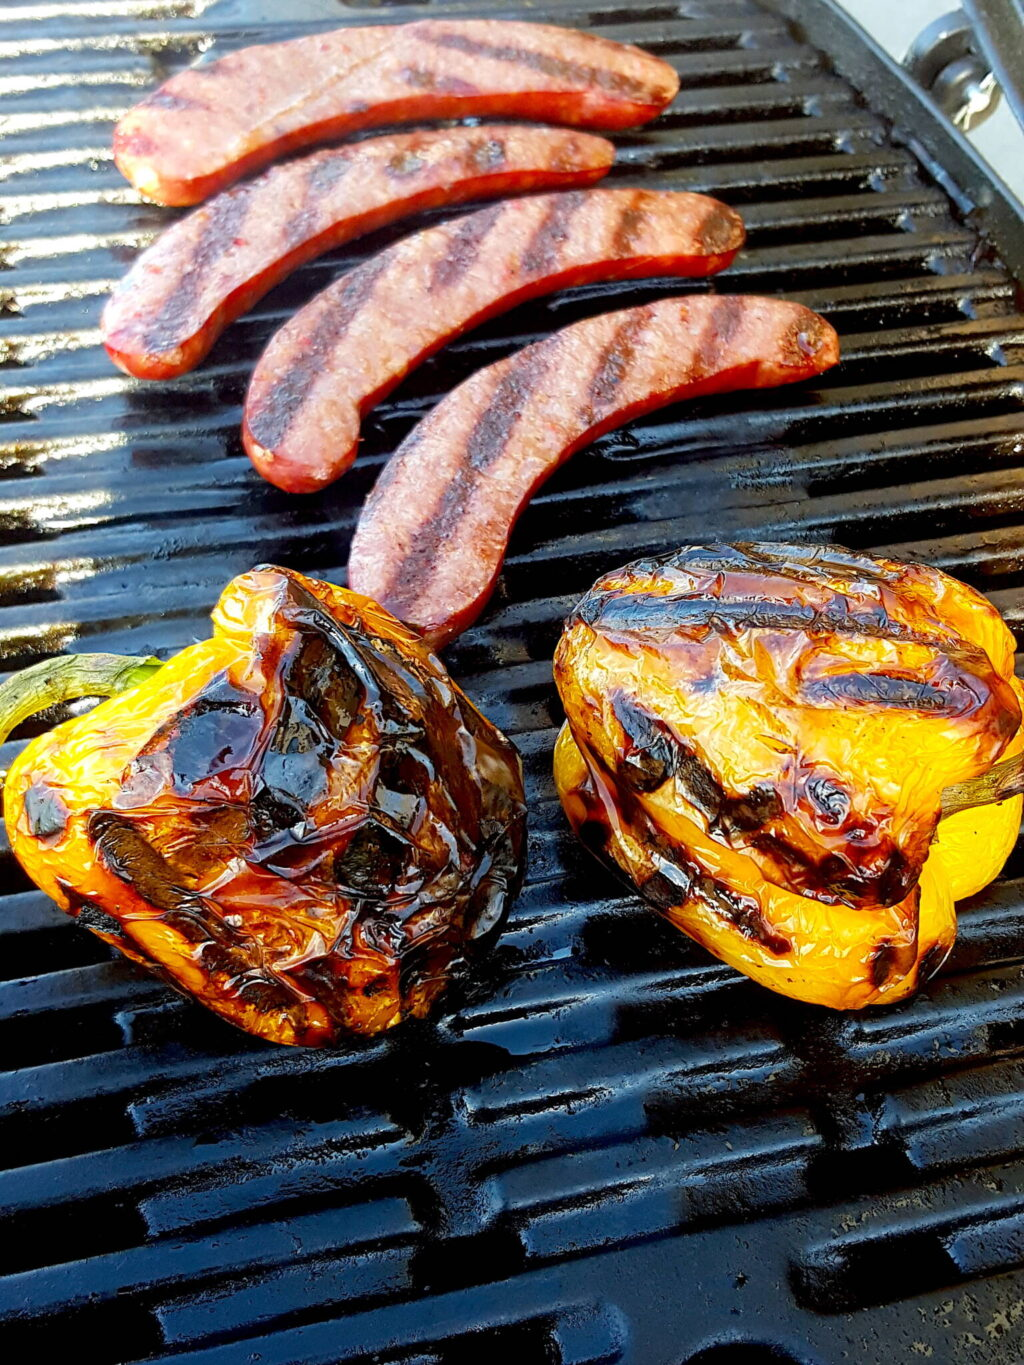 Grilling peppers & chorizo